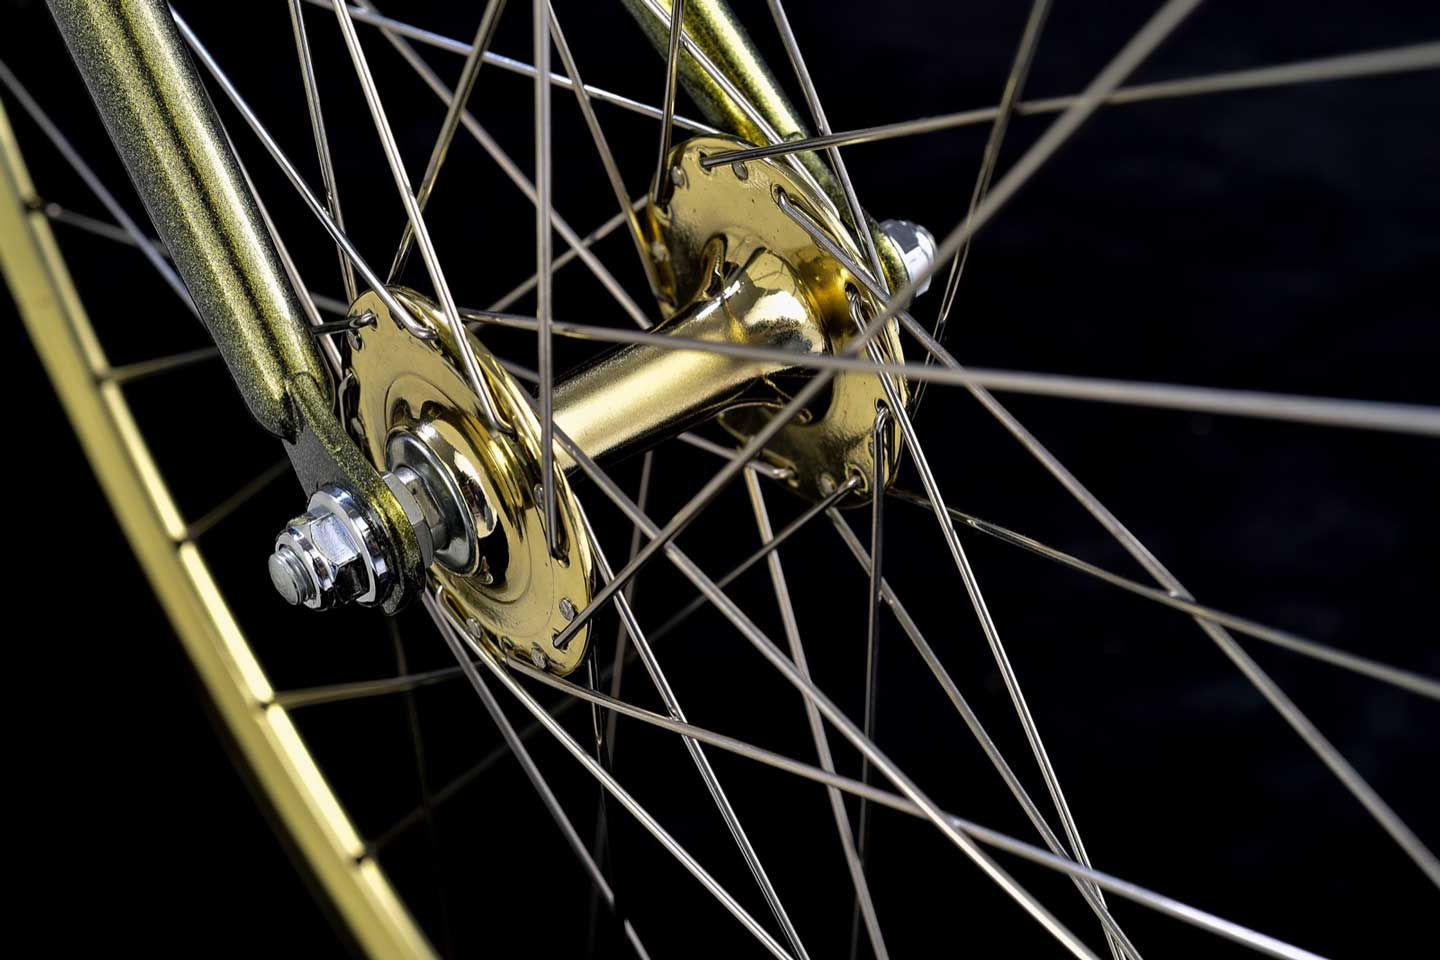 STAR WARS x tokyobike Feel the Force BB-8 - gold front hub